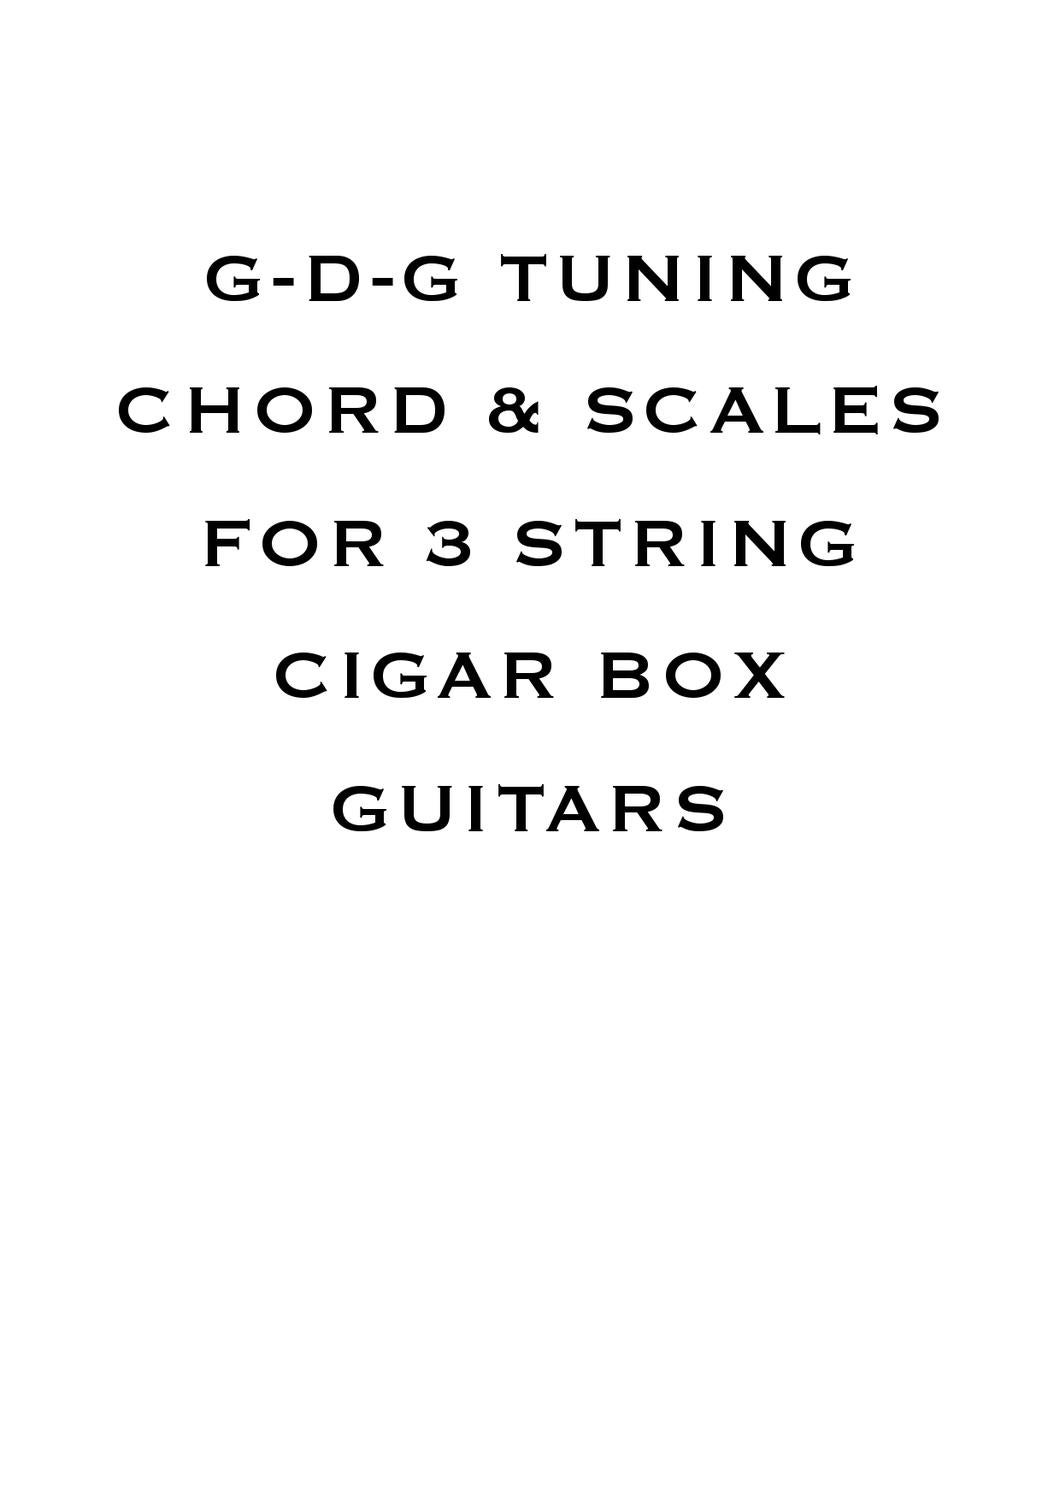 gdg 3 string cigar box guitar scales and chords by dominic byrne issuu. Black Bedroom Furniture Sets. Home Design Ideas